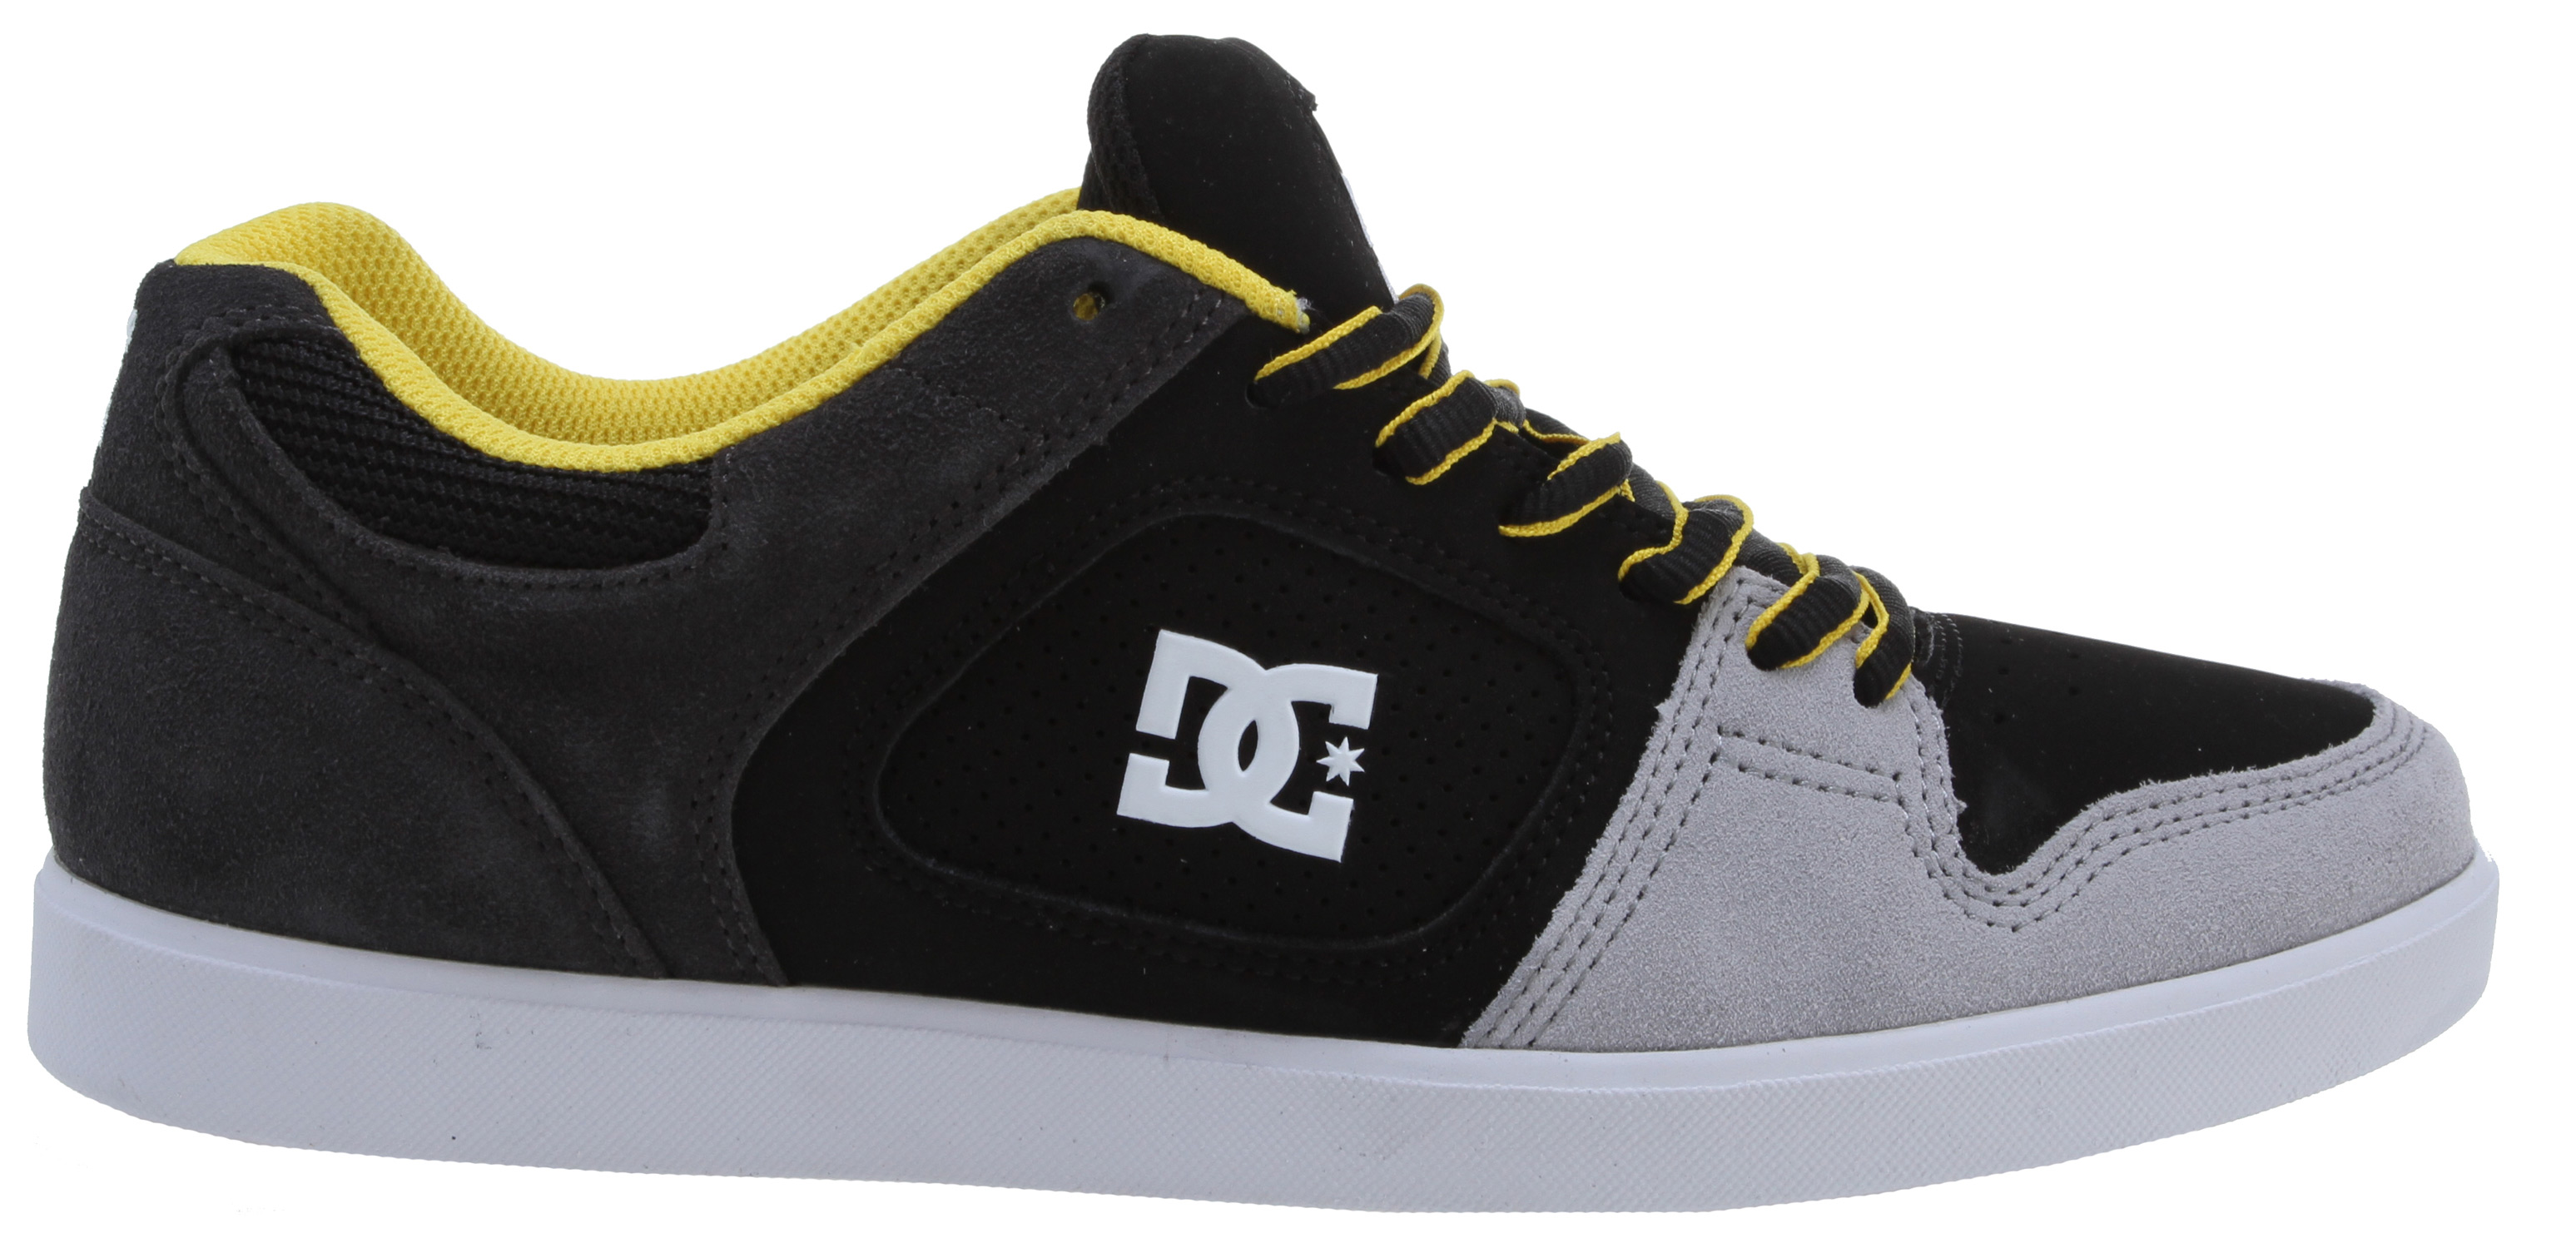 Skateboard The Union is built from durable suede, nubuck, or leather, and features a foam-padded tongue and heel collar for comfort and support. Vent holes allow maximum airflow, while the performance cup sole features abrasion-resistant sticky rubber on its outer edges. The tread boasts a classic herringbone pattern.Key Features of the DC Union Shoes: Durable Suede, Nubuck Or Leather Upper Foam Padded Tongue And Collar For Comfort And Support Vent Holes For Breathability Performance Cup Sole Abrasion-Resistant Sticky Rubber Outsole Classic Herringbone Tread - $29.95